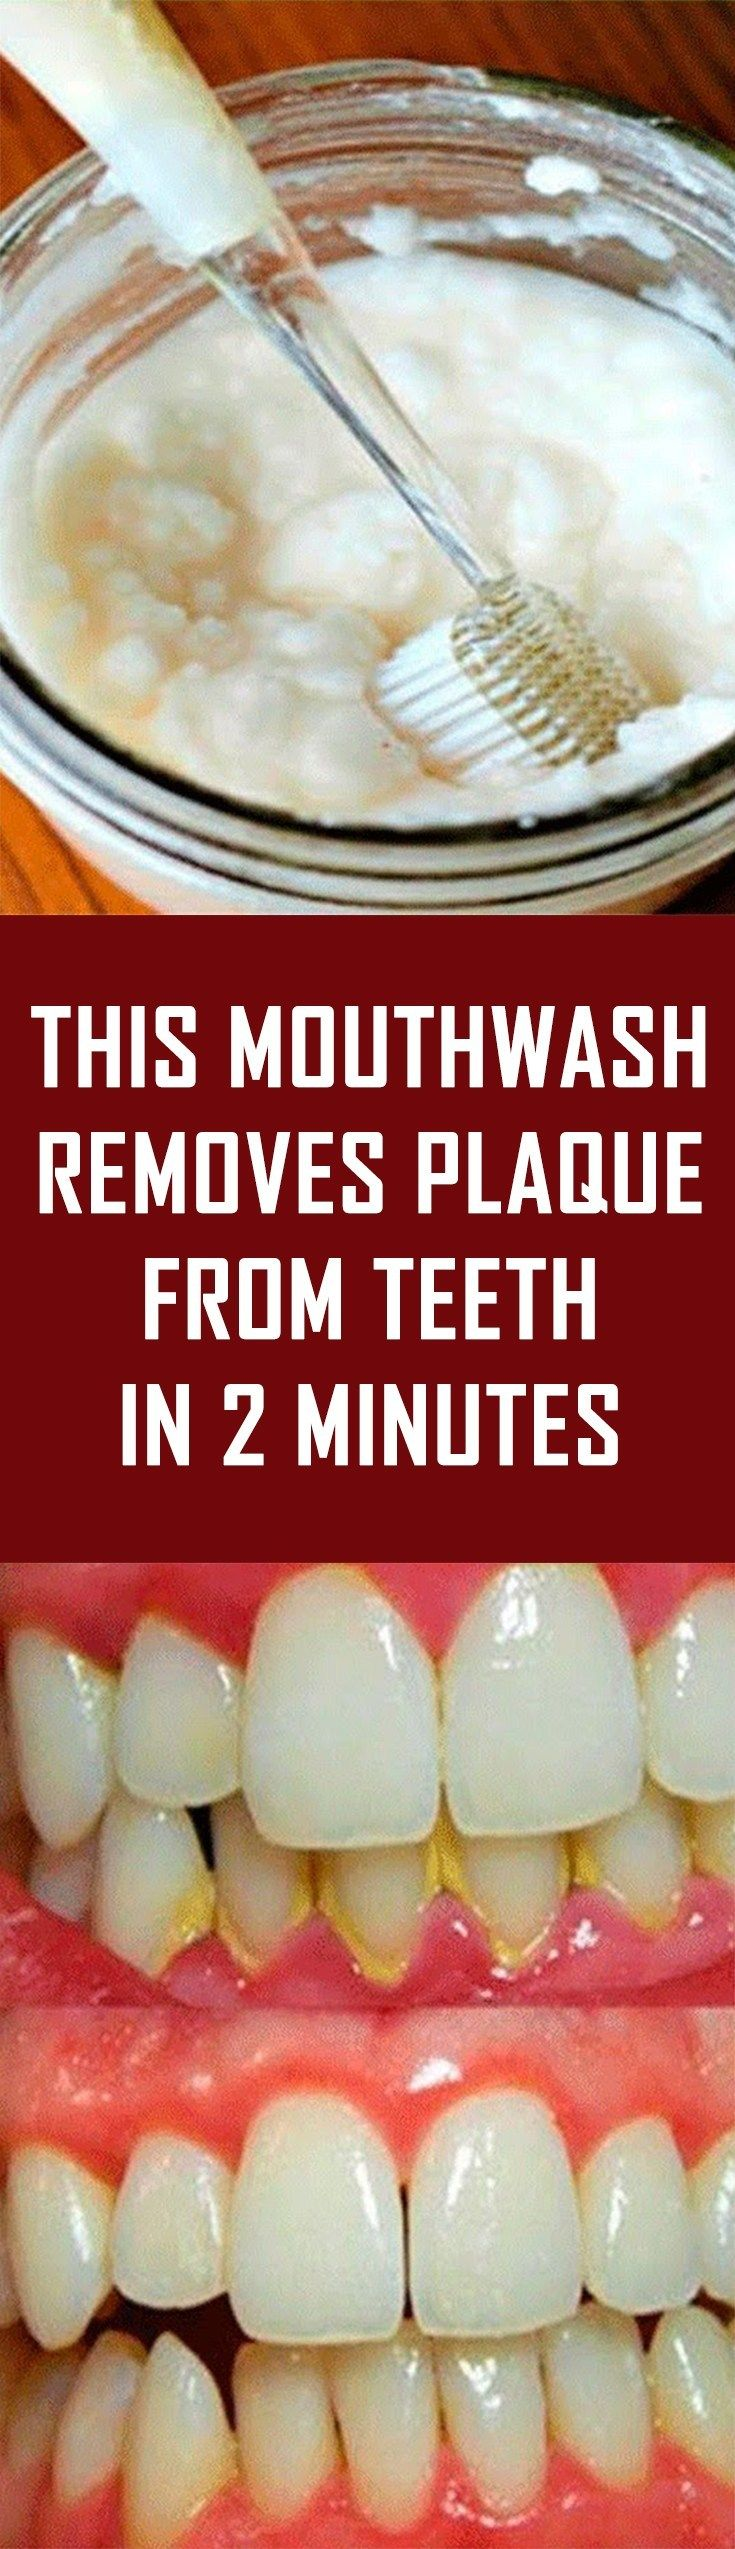 This Mouthwash Removes Plaque From Tooth In 2 Minutes